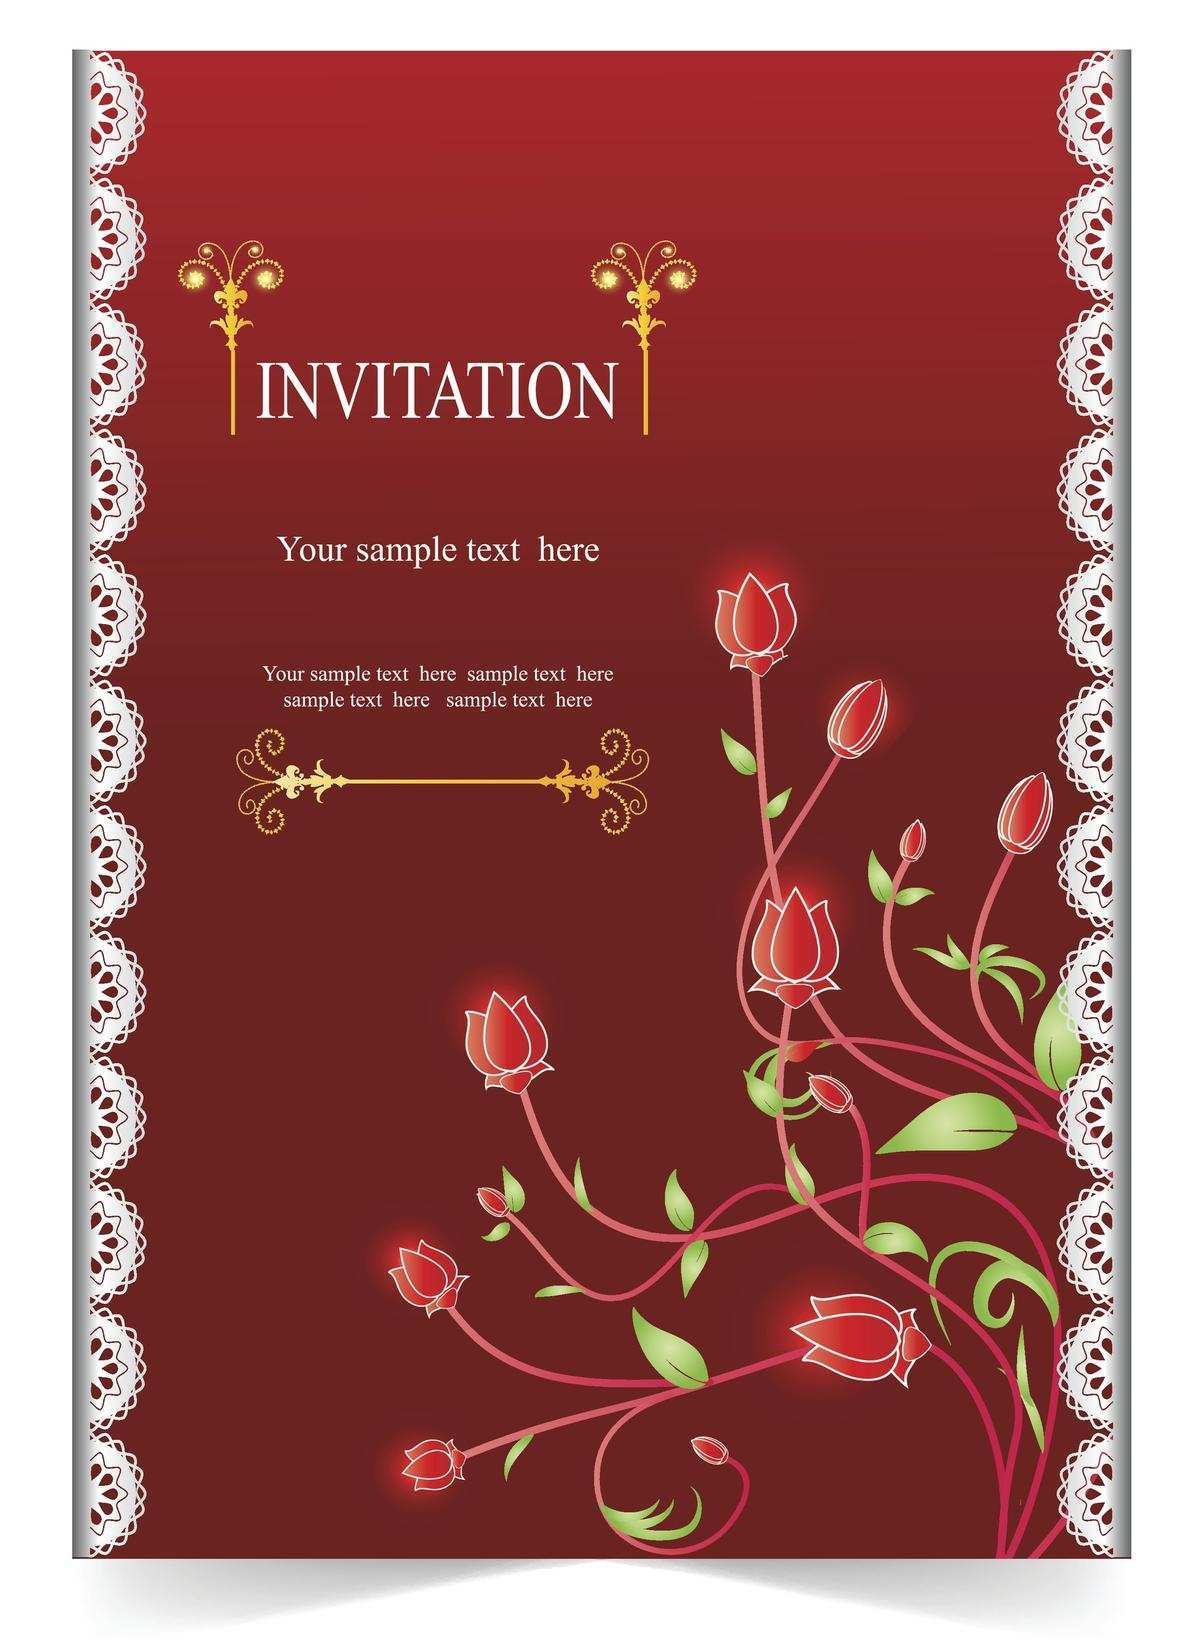 24 Adding Invitation Card Format For Retirement Party Download with Invitation Card Format For Retirement Party